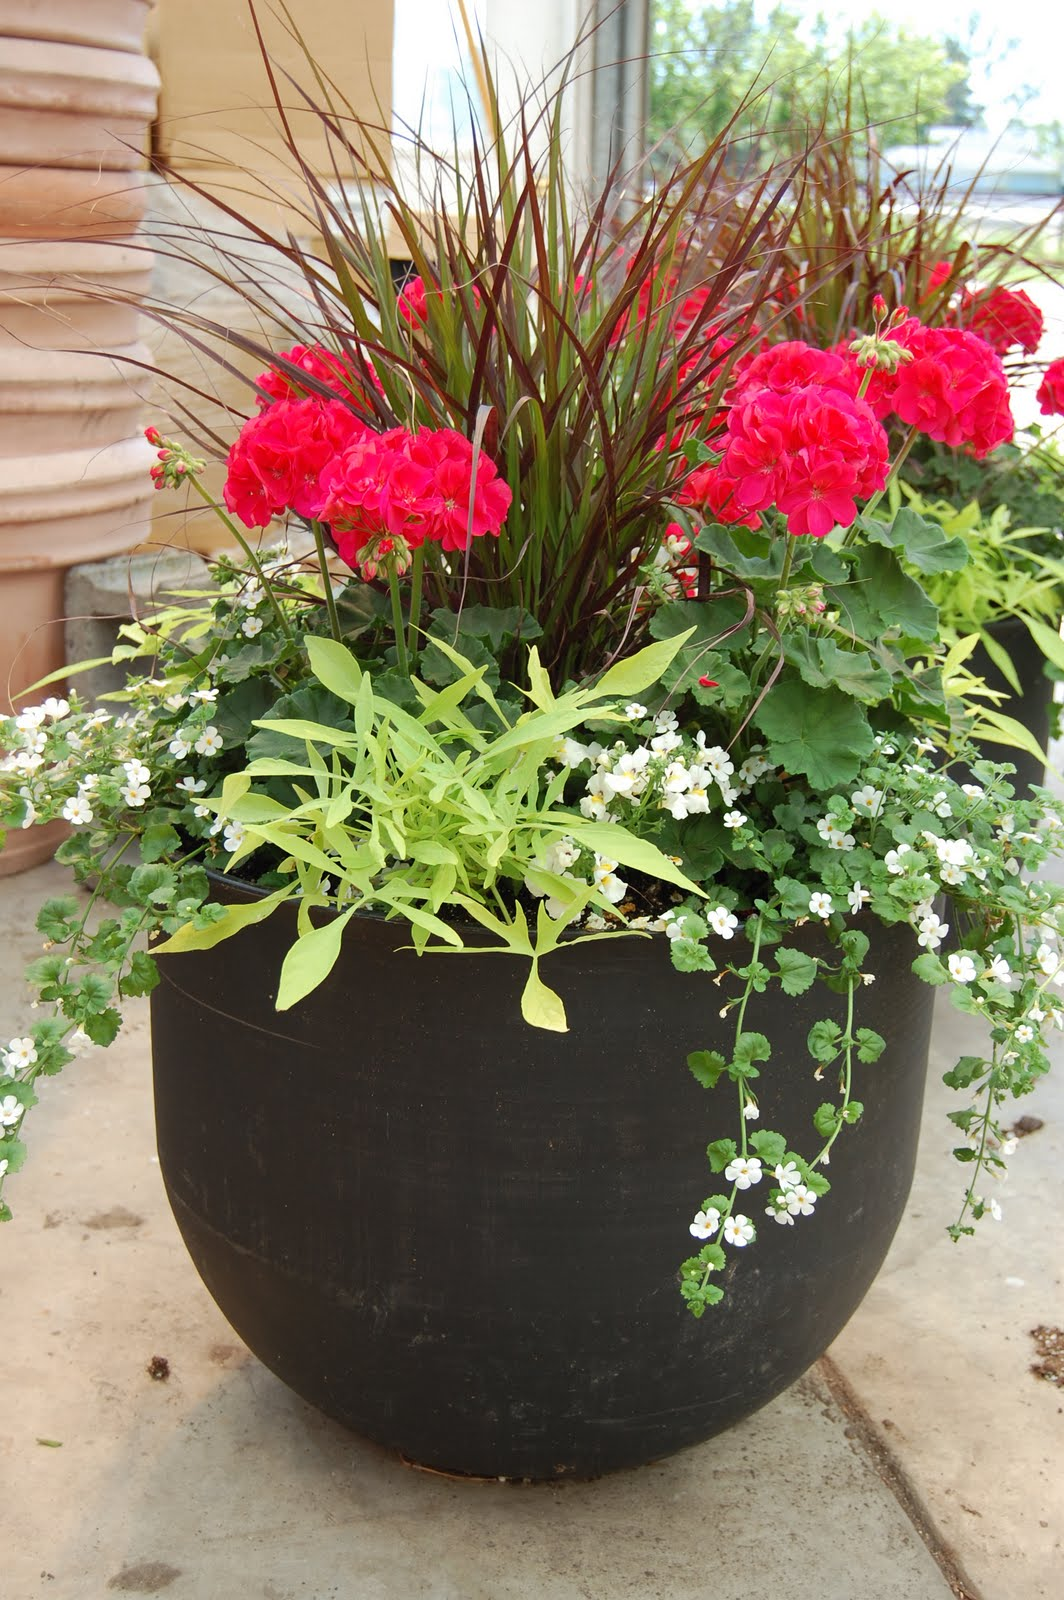 Schaefer Greenhouses: How To Plant a Patio Pot Container ... on Tree Planting Ideas For Backyard id=17384